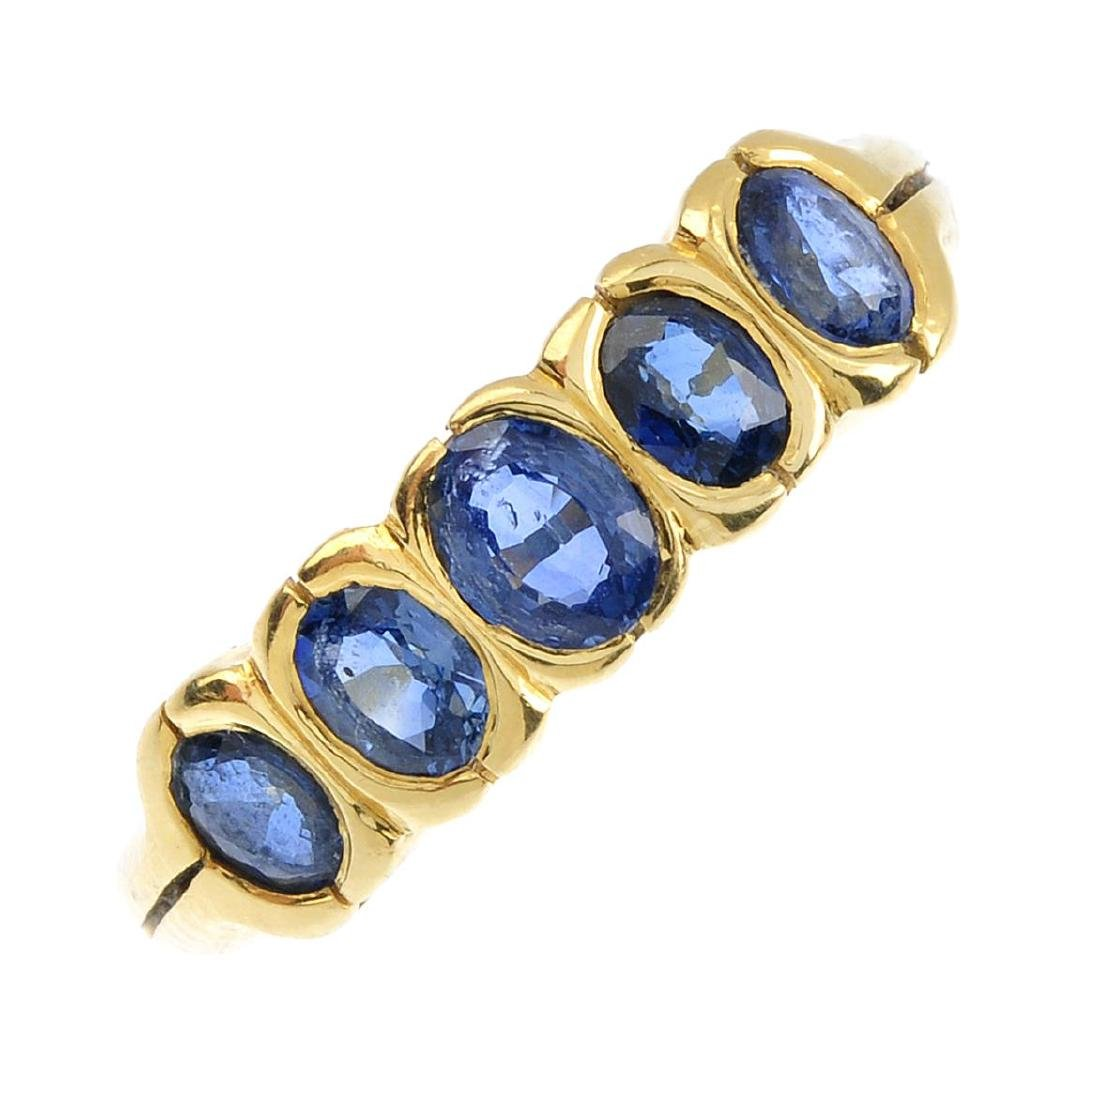 An 18ct gold sapphire five-stone ring. The oval-shape